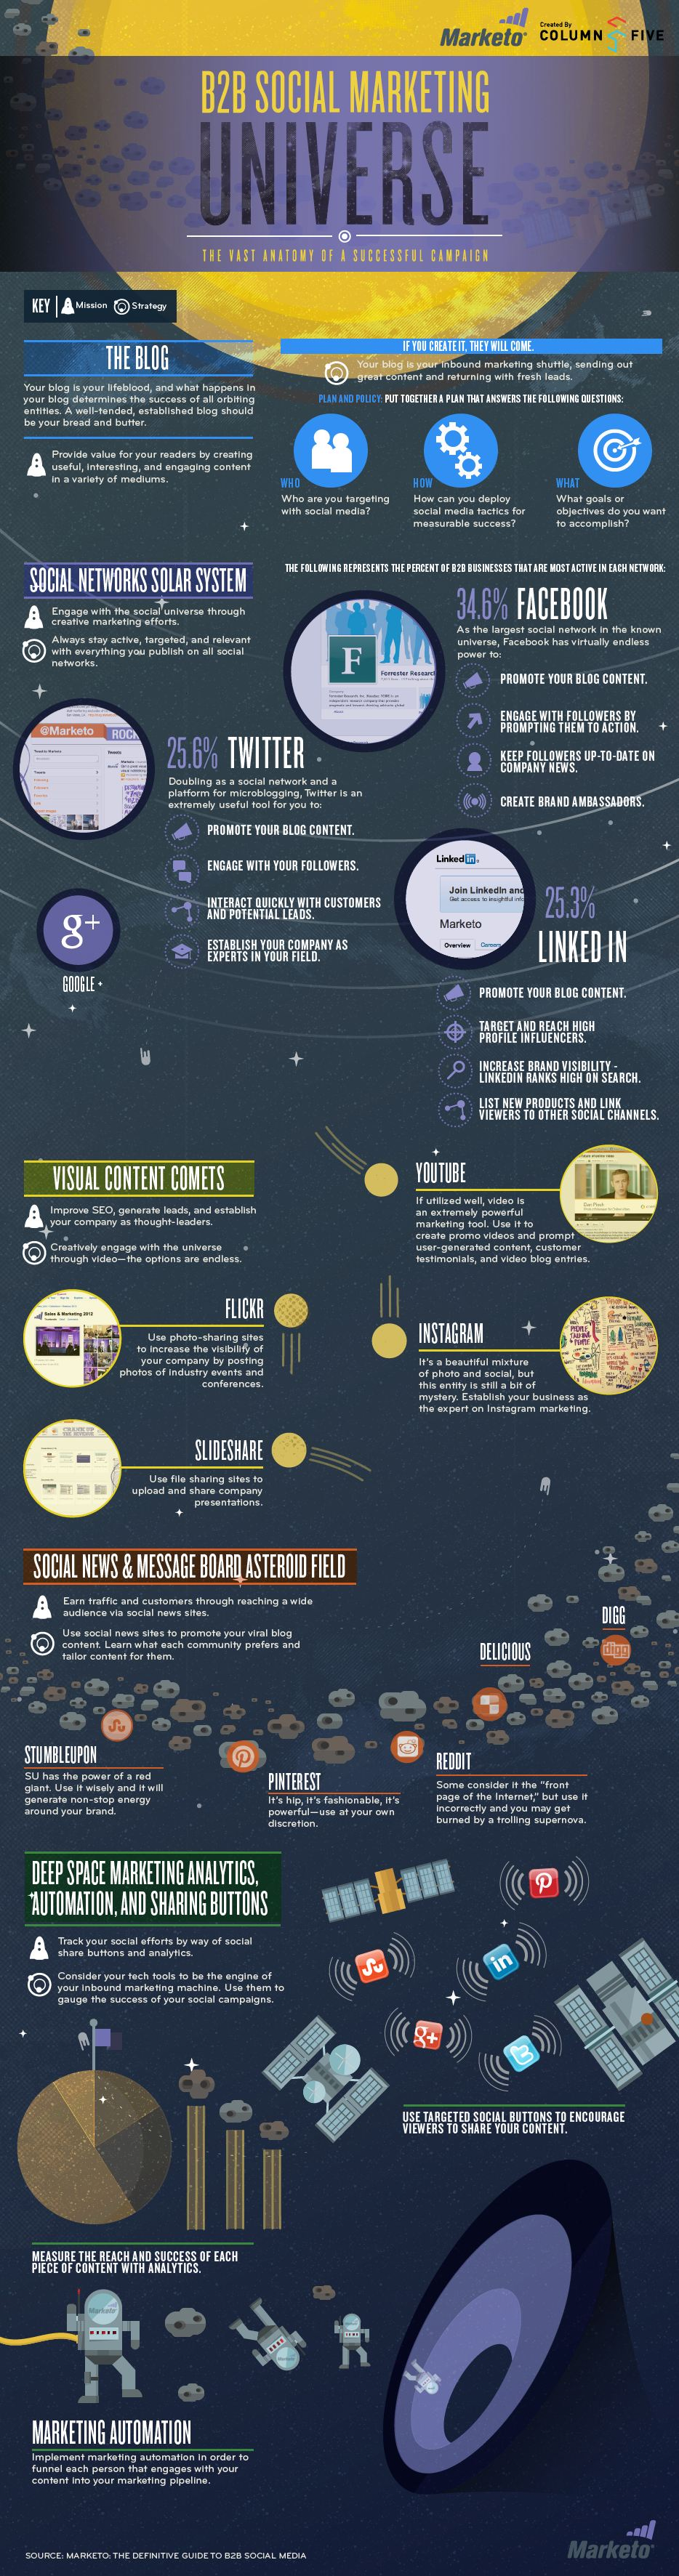 http://blog.marketo.com/blog/2012/07/b2b-social-marketing-universe-the-vast-anatomy-of-a-successful-campaign-infographic.html